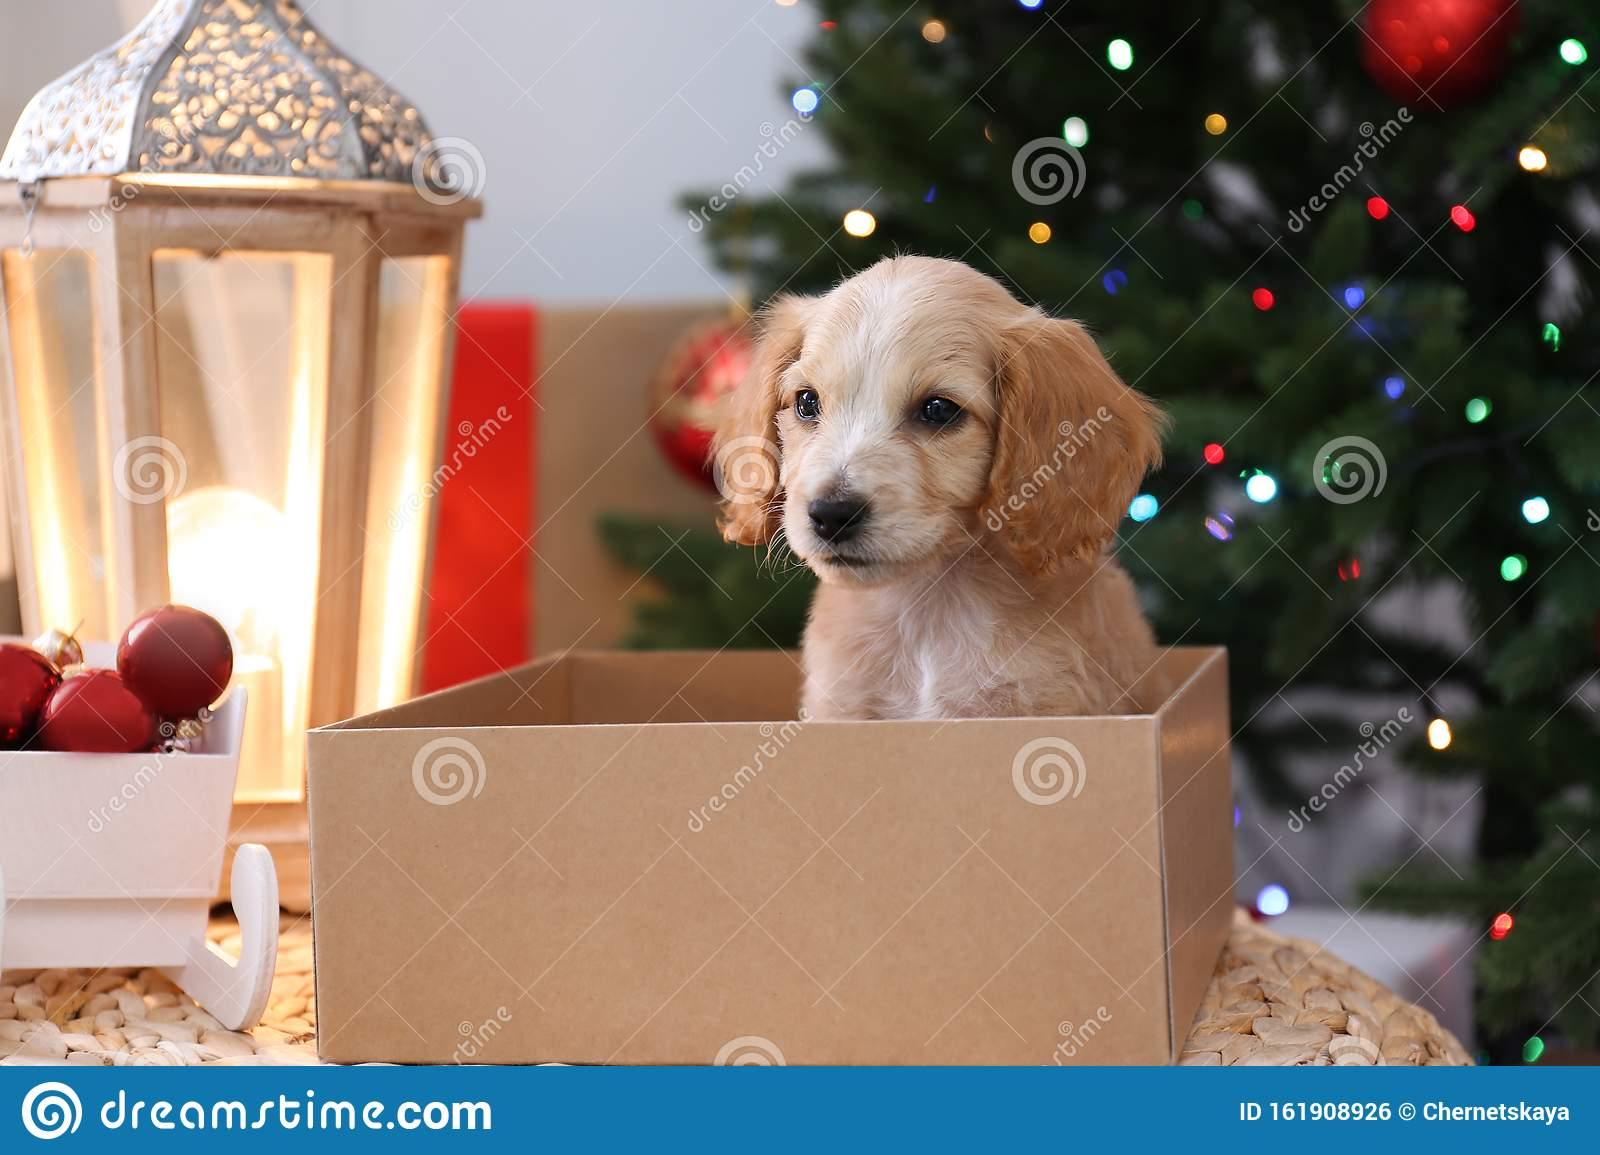 Cute English Cocker Spaniel Puppy In Christmas Gift Box Stock Photo Image Of English Cute 161908926